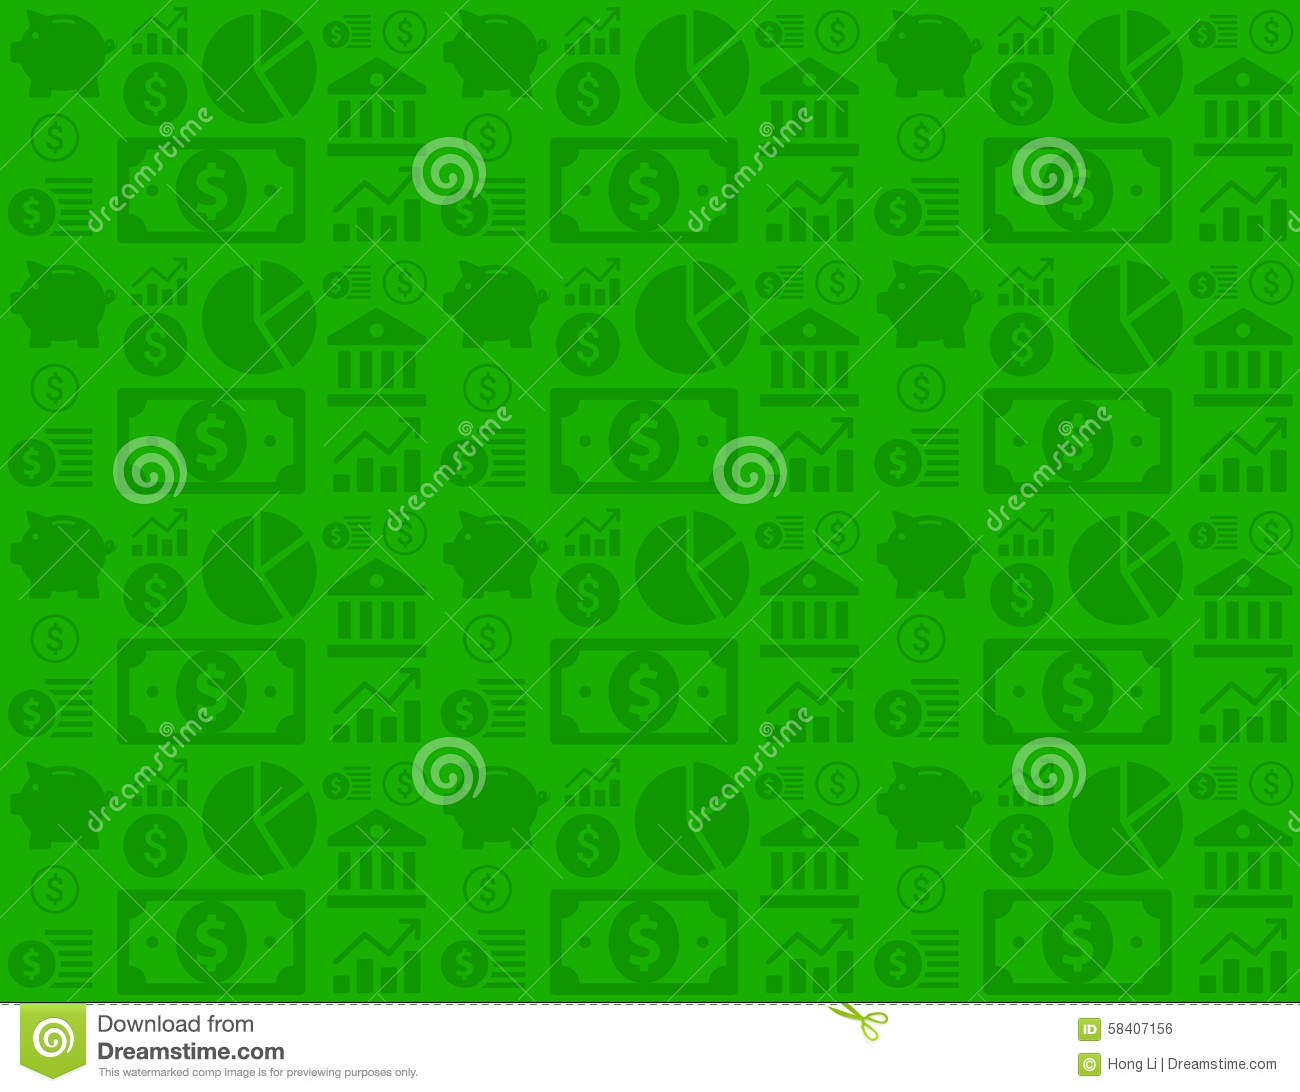 Finance Background: Green Seamless Financial Business Background Pattern With